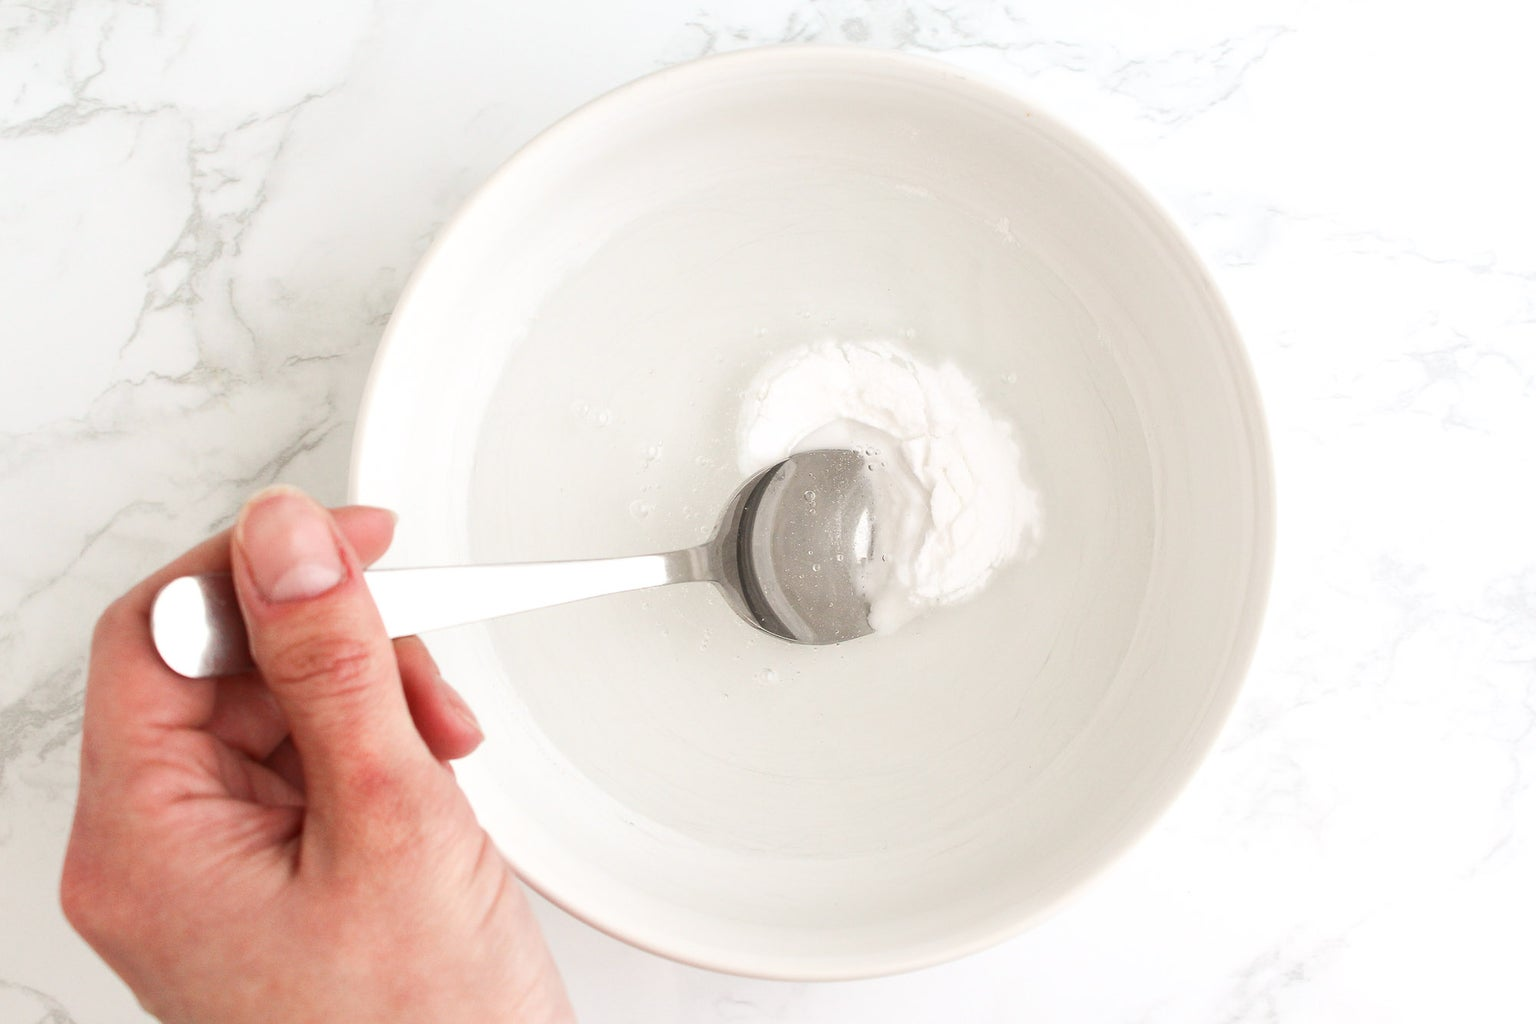 Combine the Glue and Baking Soda